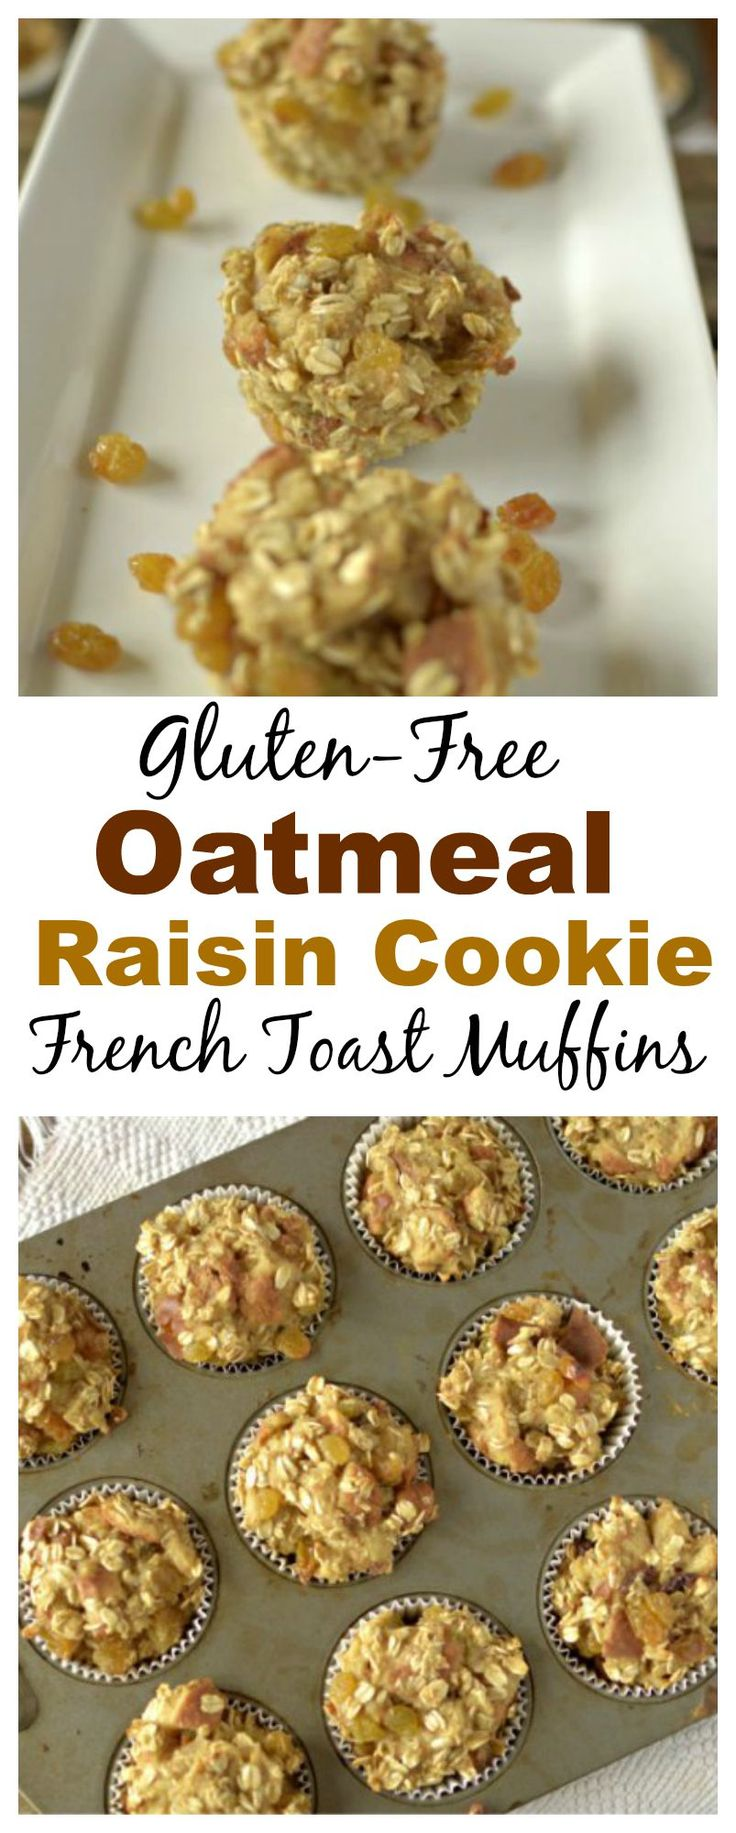 ... Goods on Pinterest | Banana oat muffins, Muffins and Chocolate chips